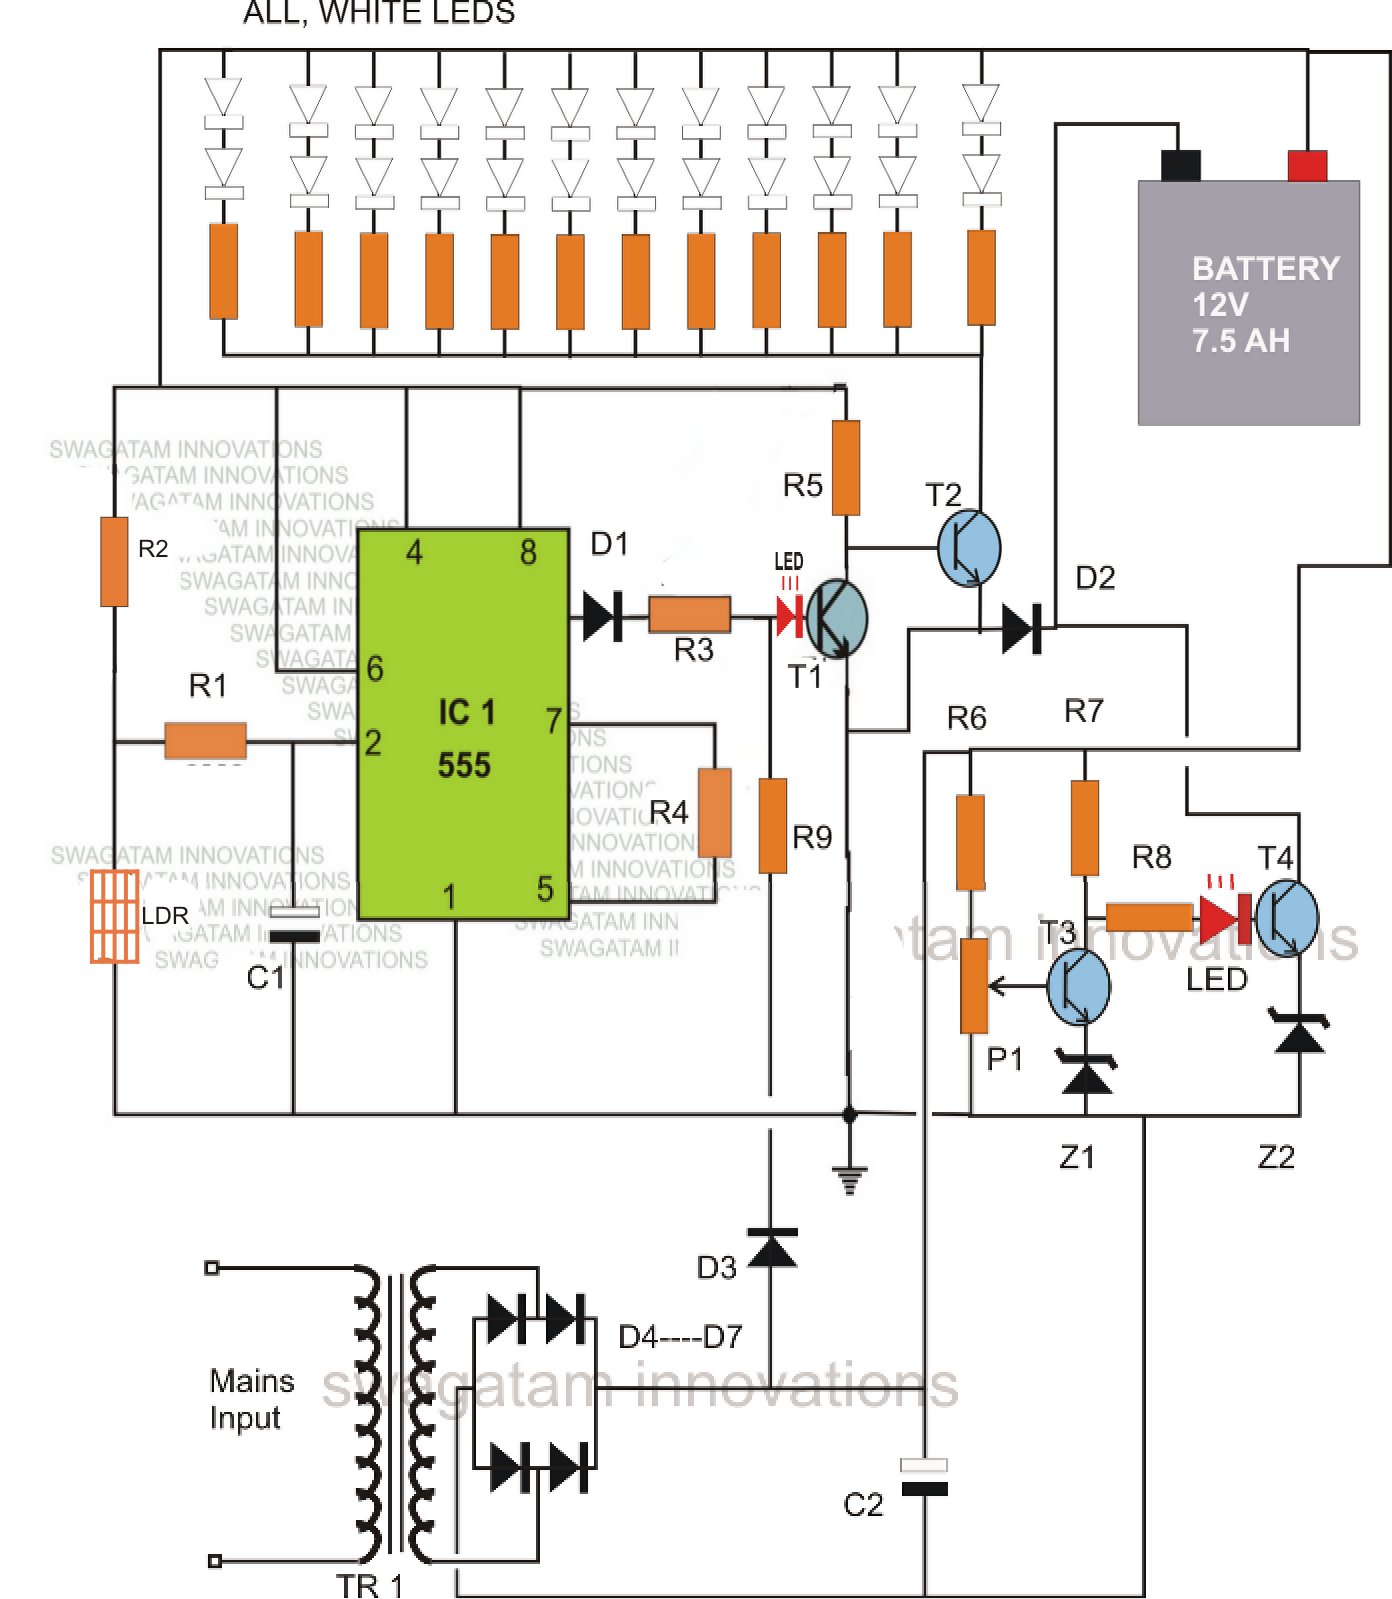 WRG-5624] 12v Battery Charger Circuit With Overcharge Protection